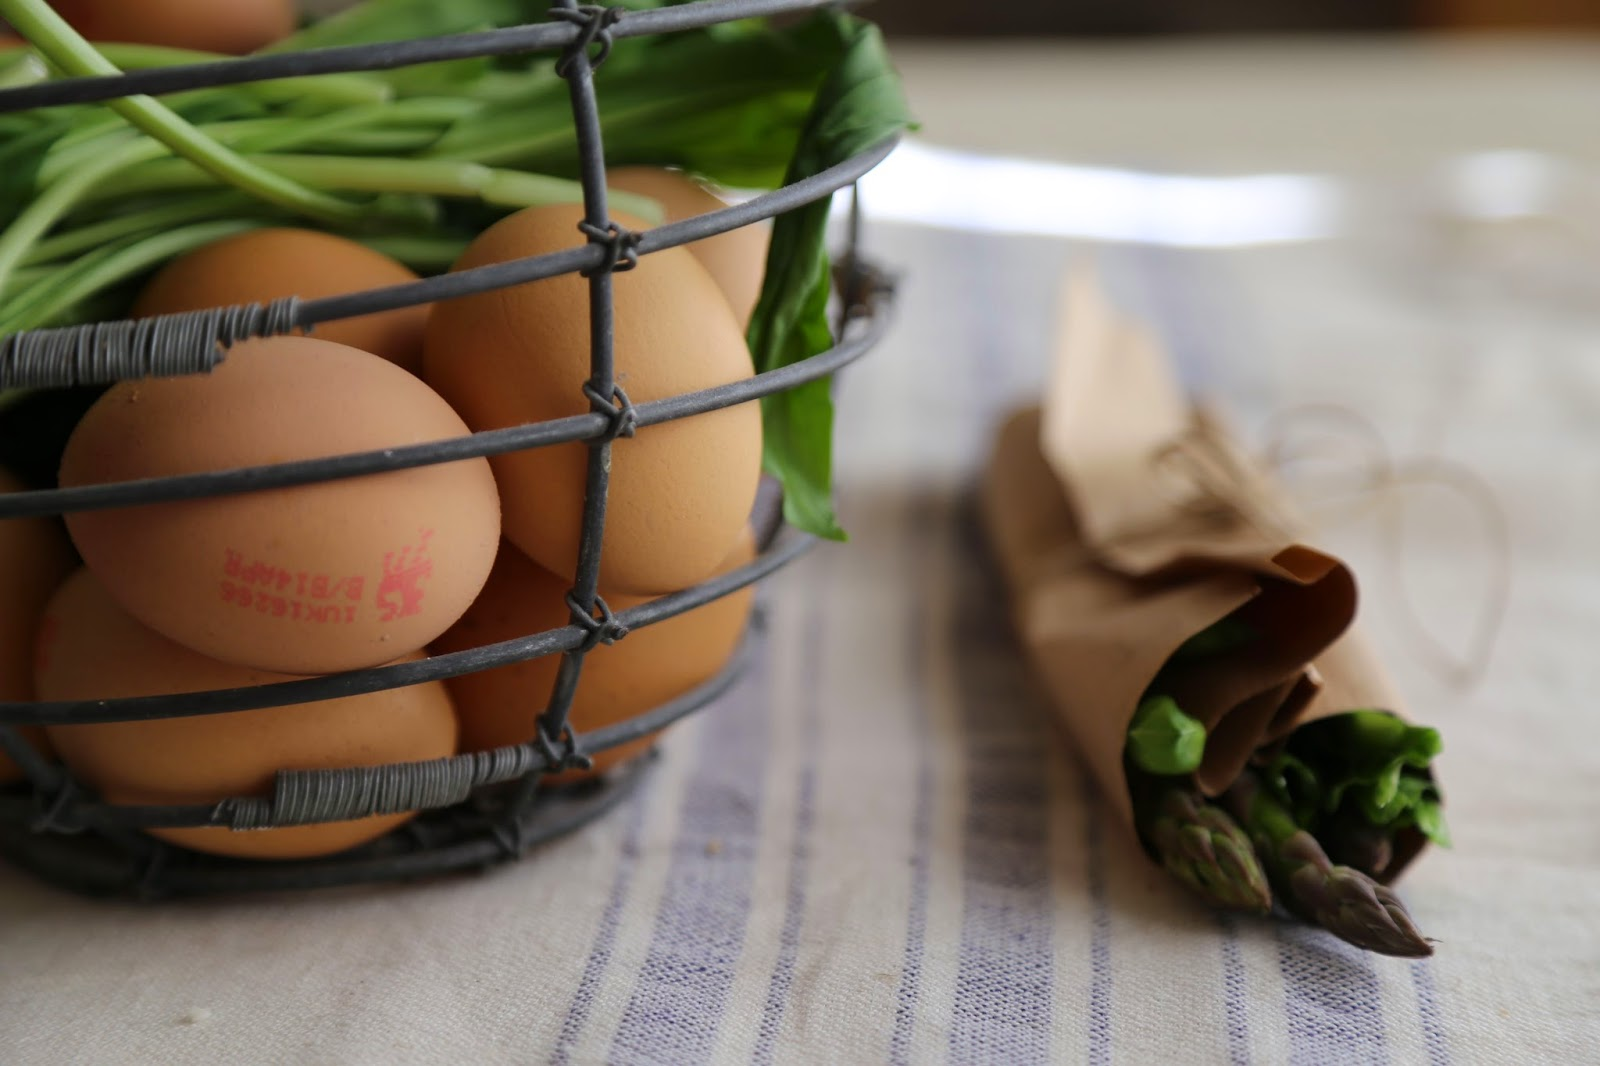 wild garlic, asparagus, omelette recipe ingredients